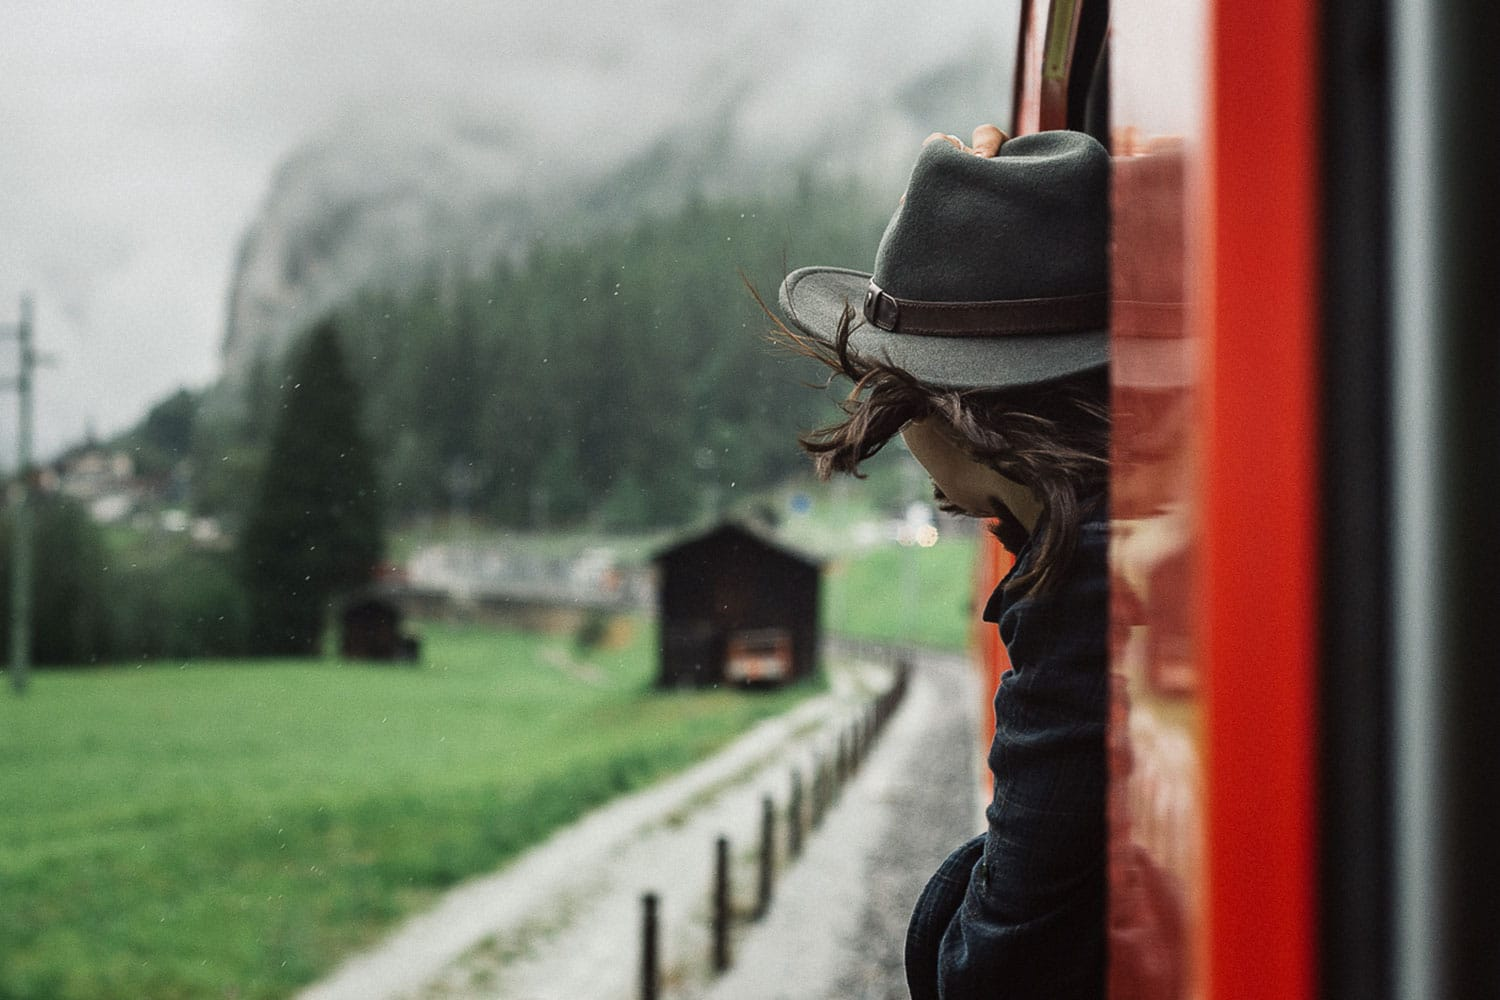 Switzerland part II – Taking the train to a rainy Zermatt